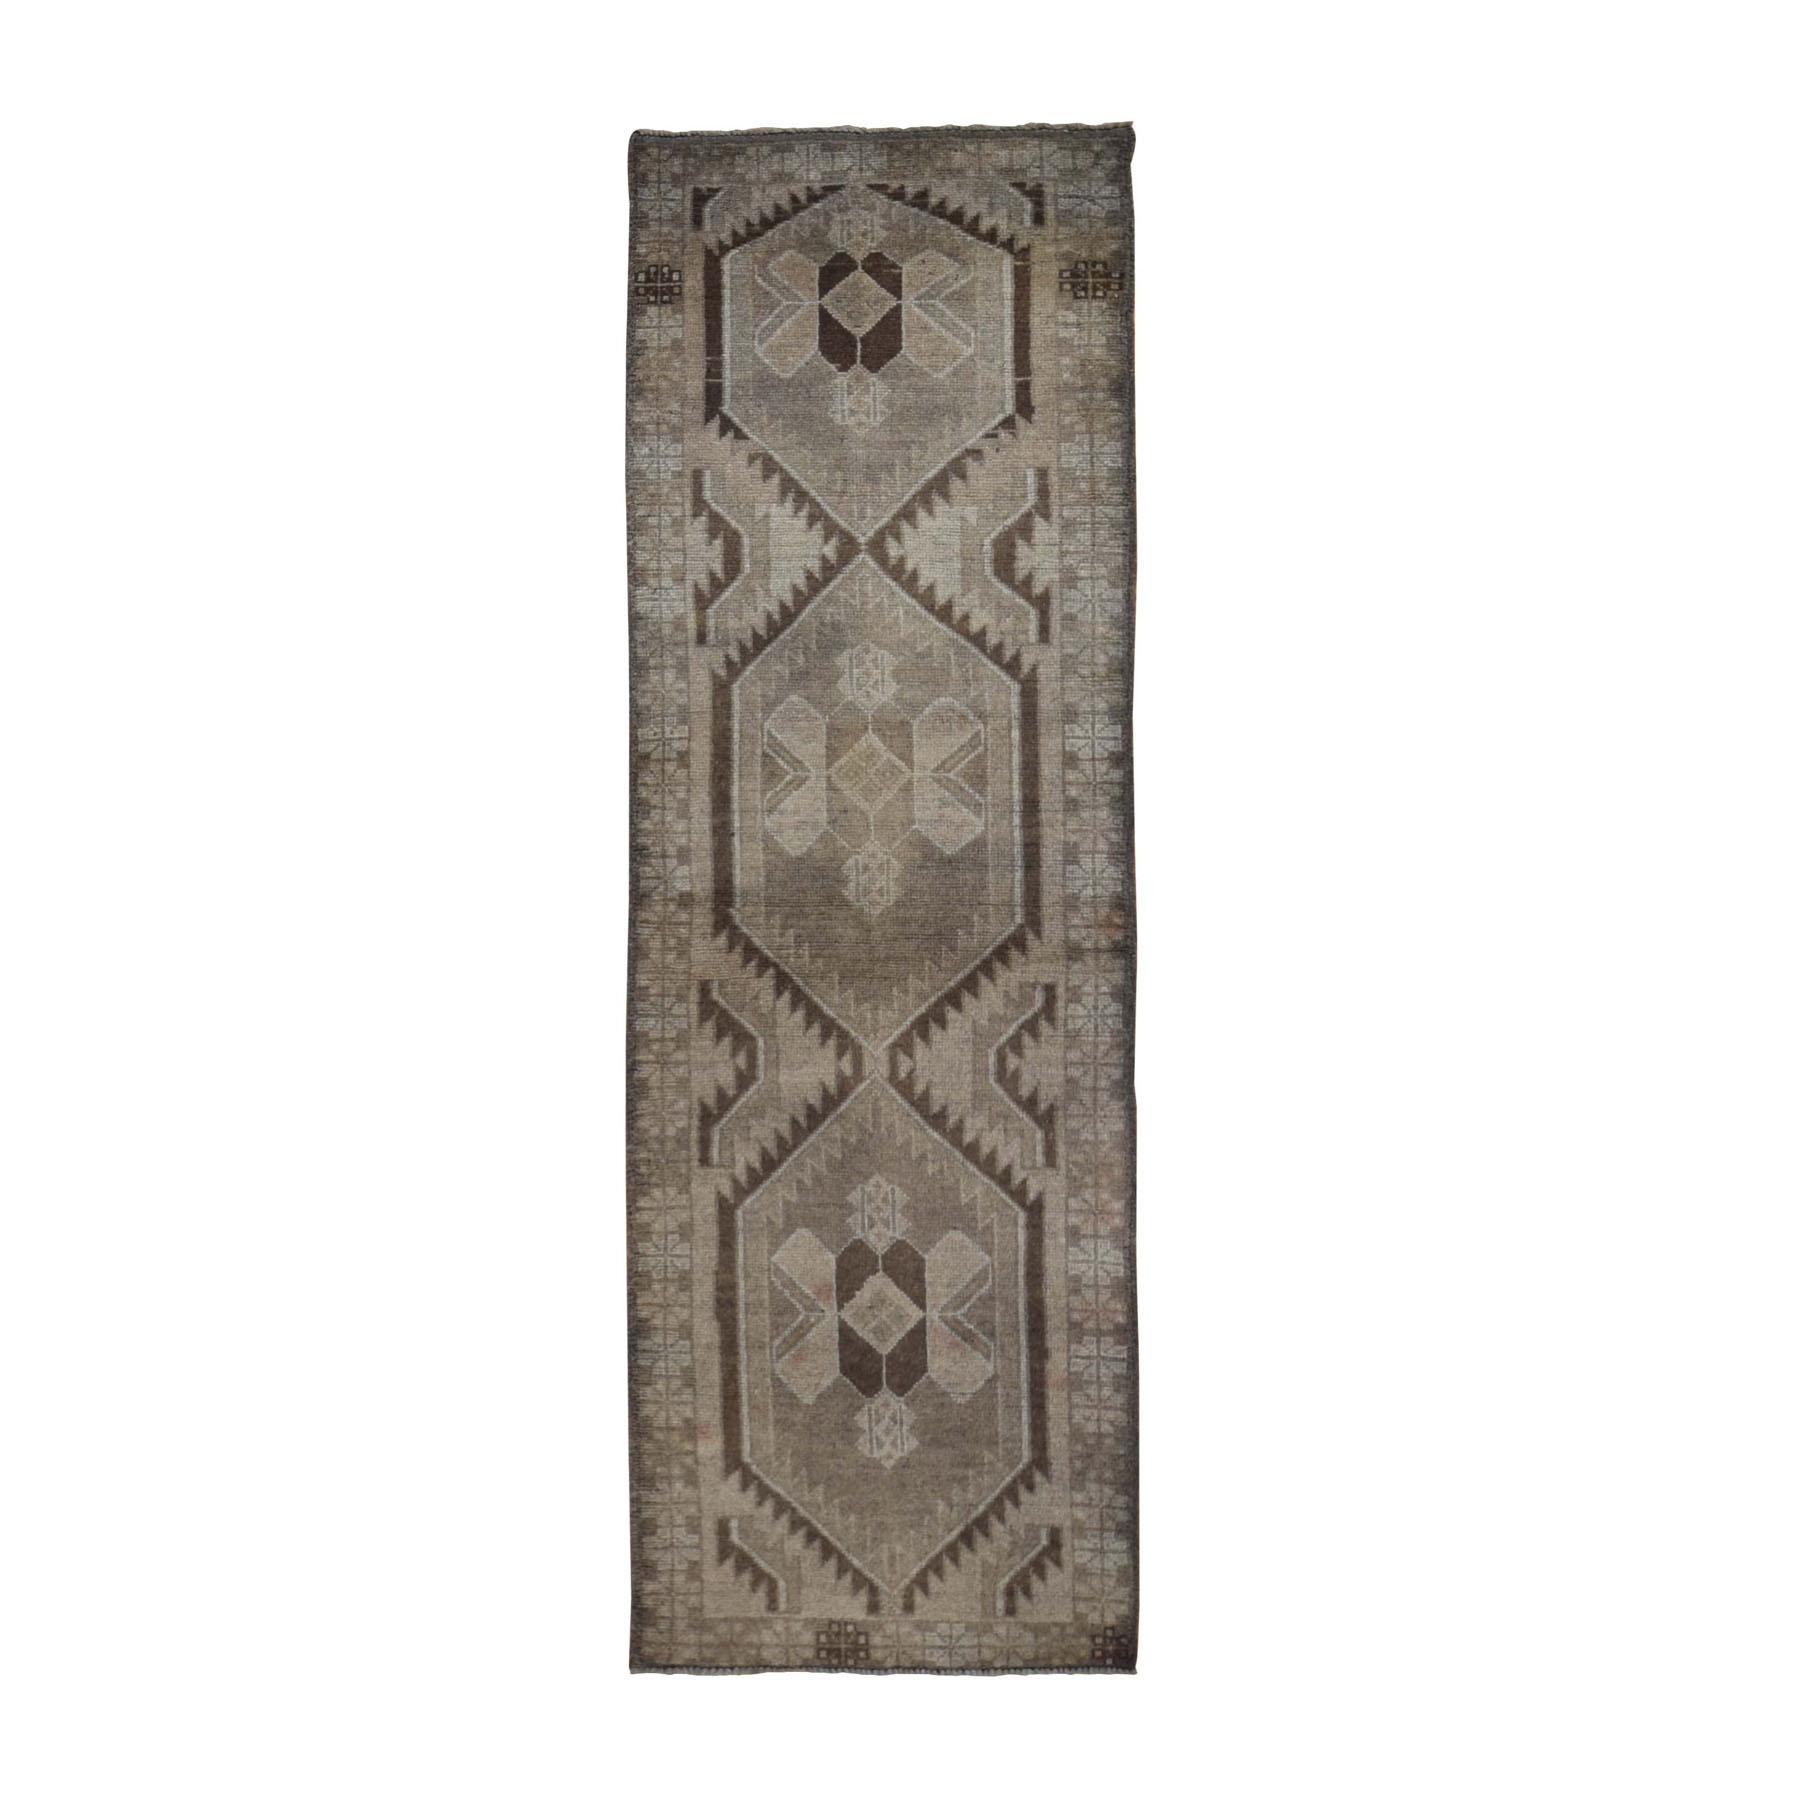 "2'5""x8' Washed Out Afghan Baluch With Natural Colors Pure Wool Runner Hand Woven Oriental Rug"